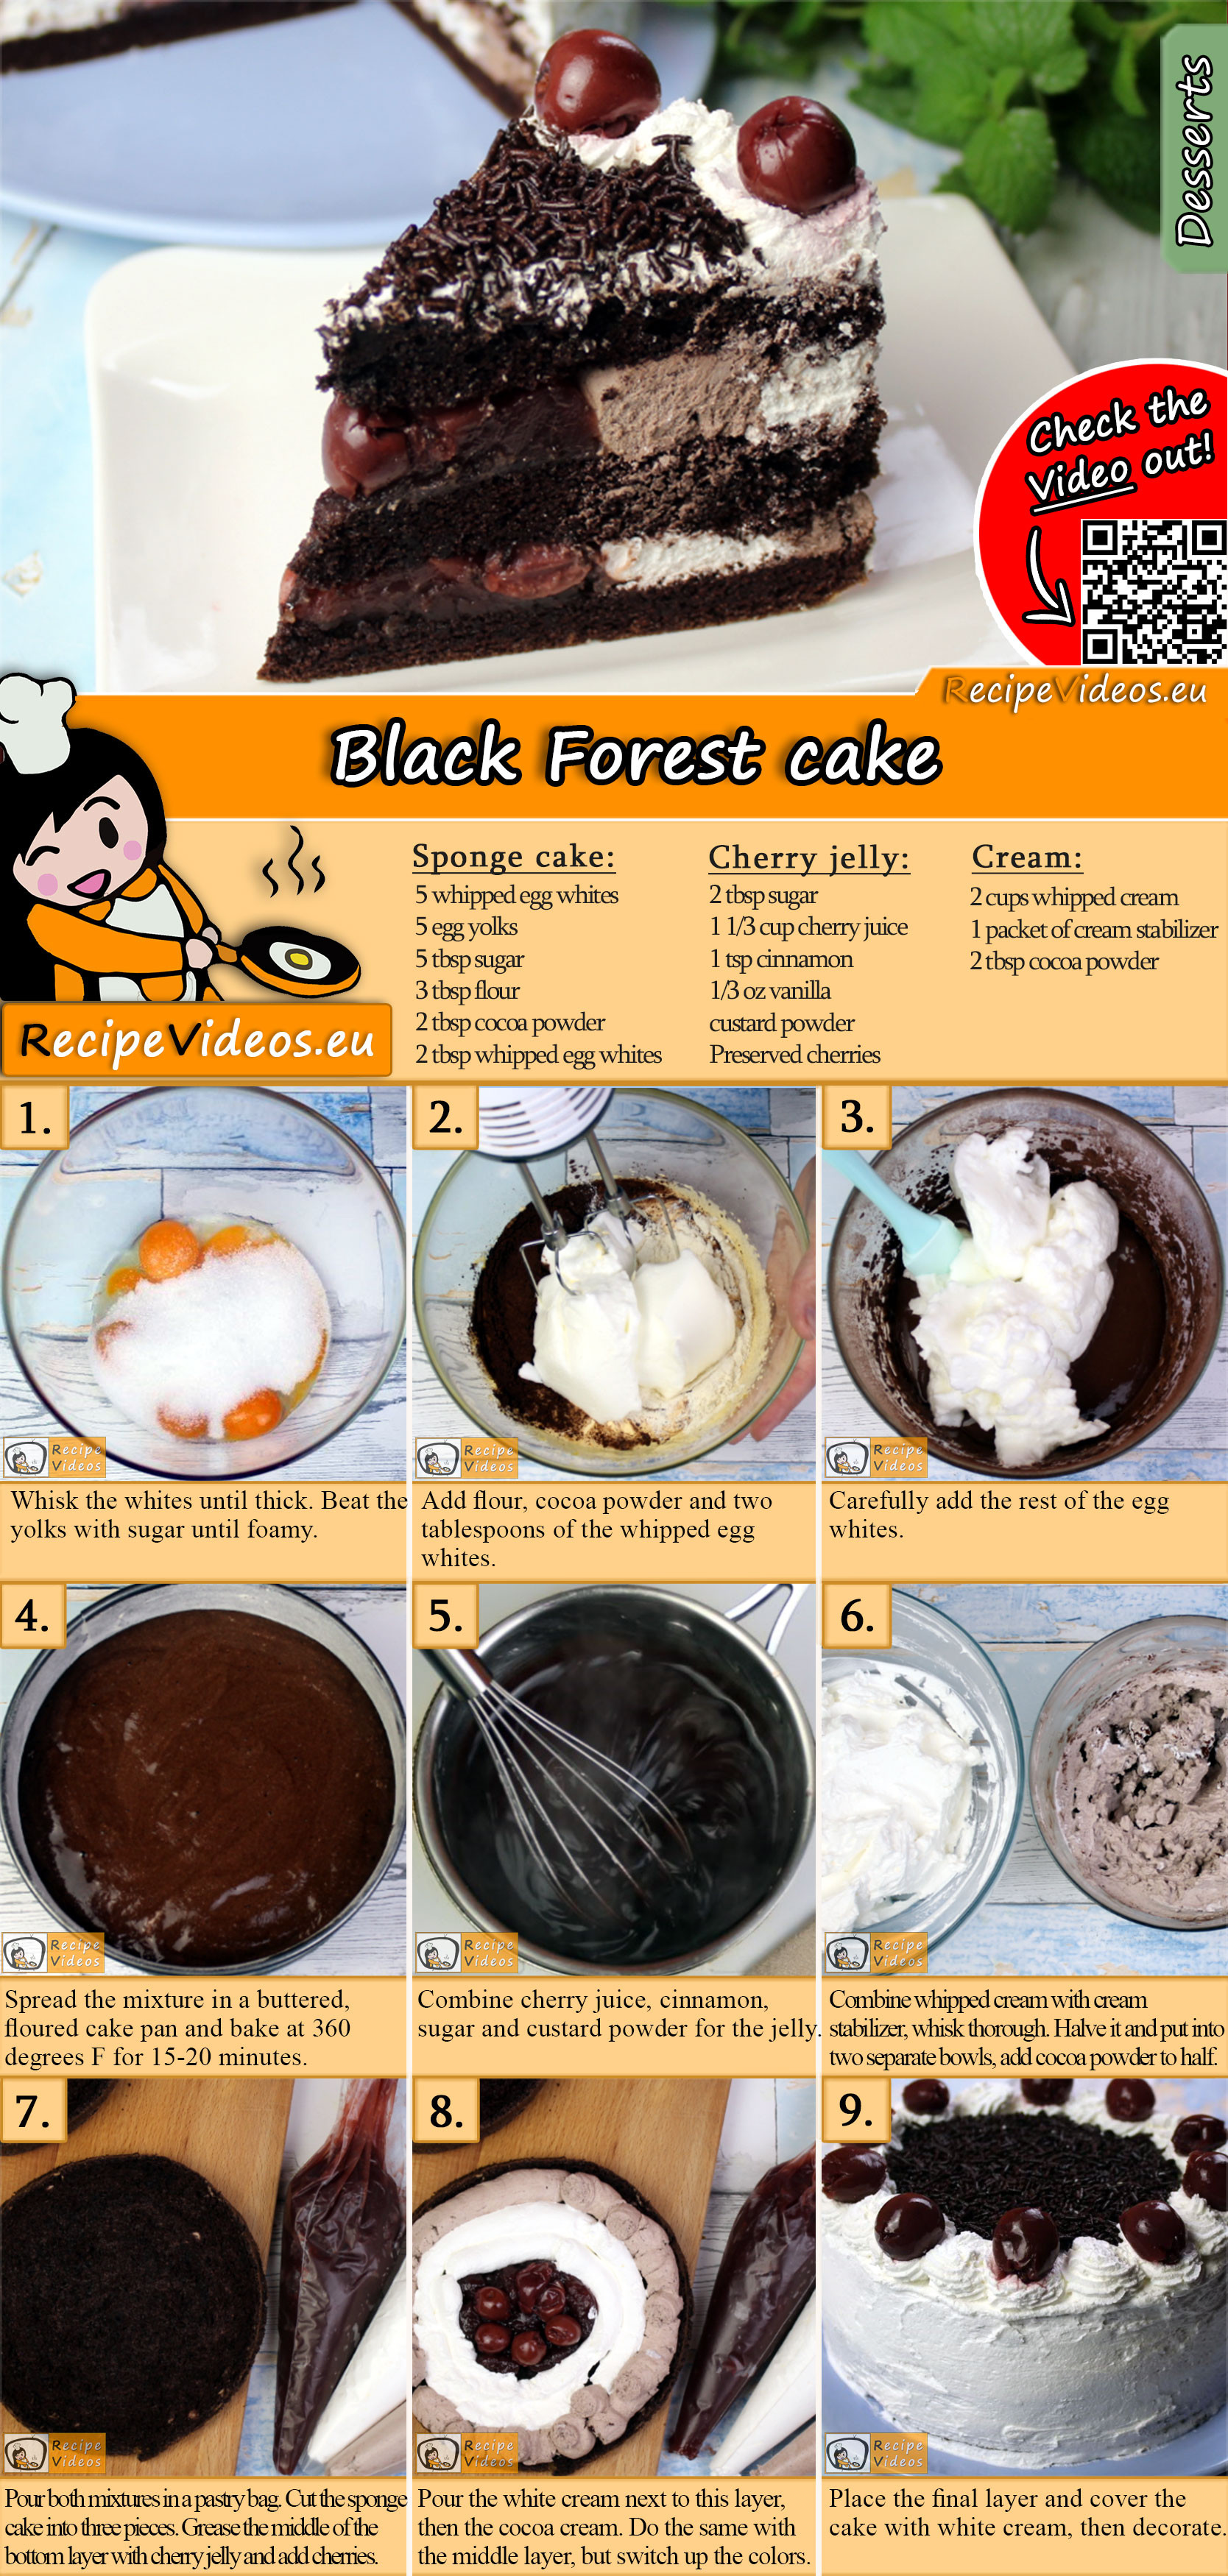 Black Forest cake recipe with video